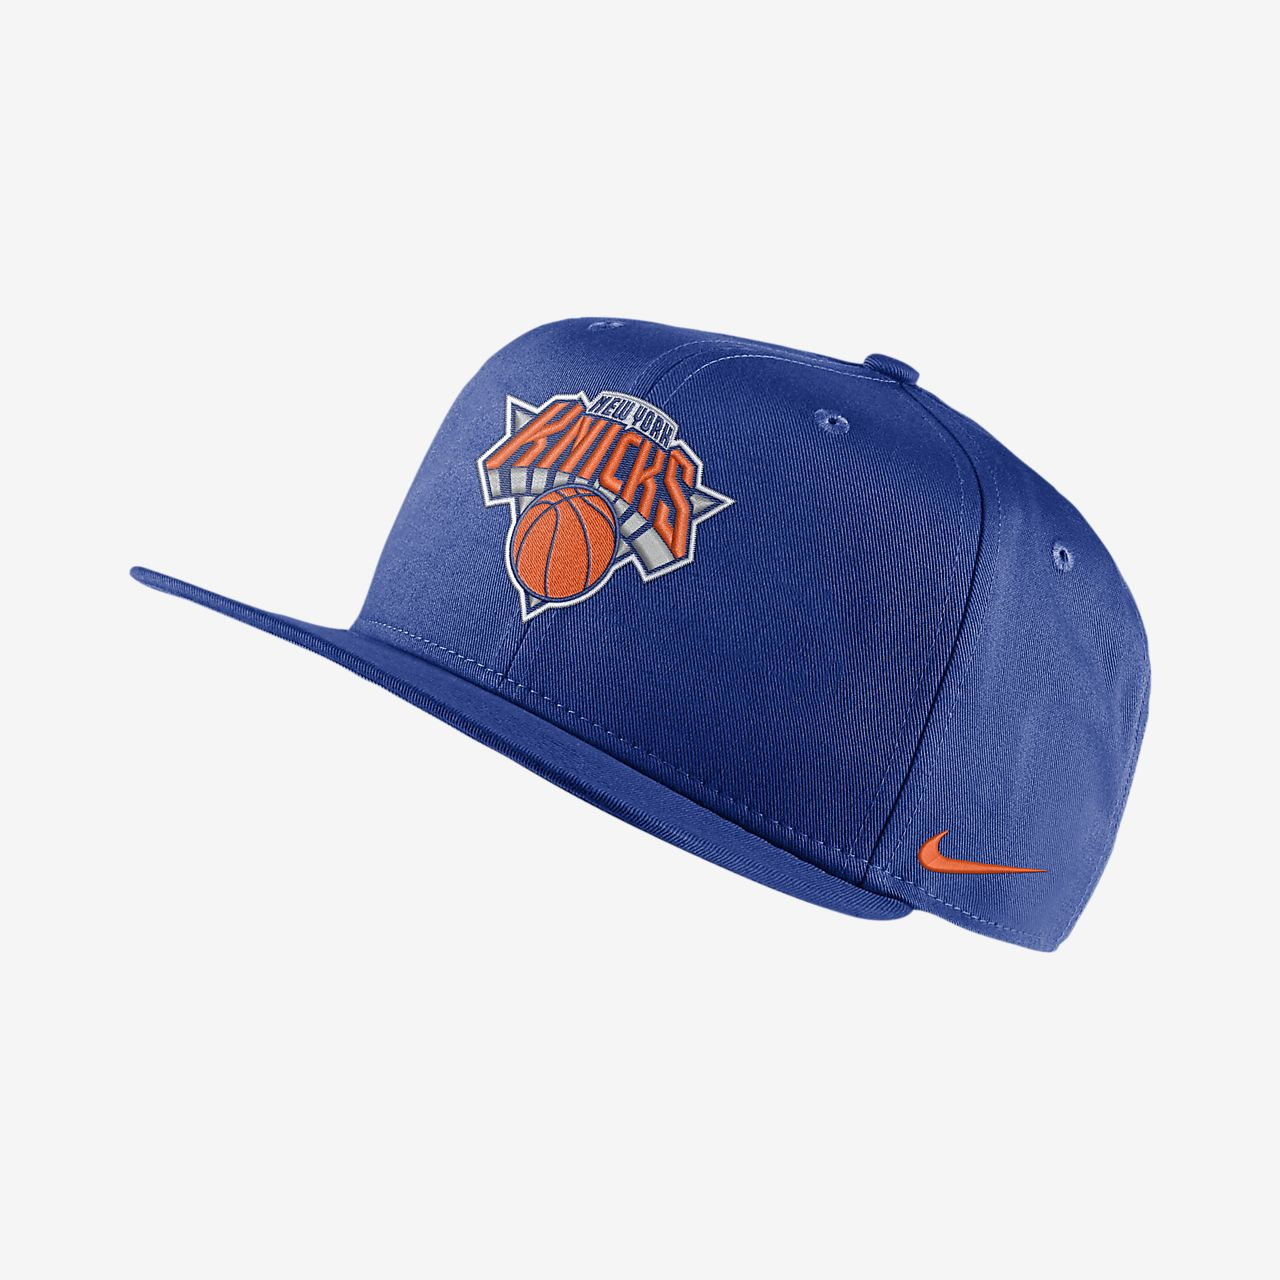 New York Knicks Nike Pro-NBA-kasket